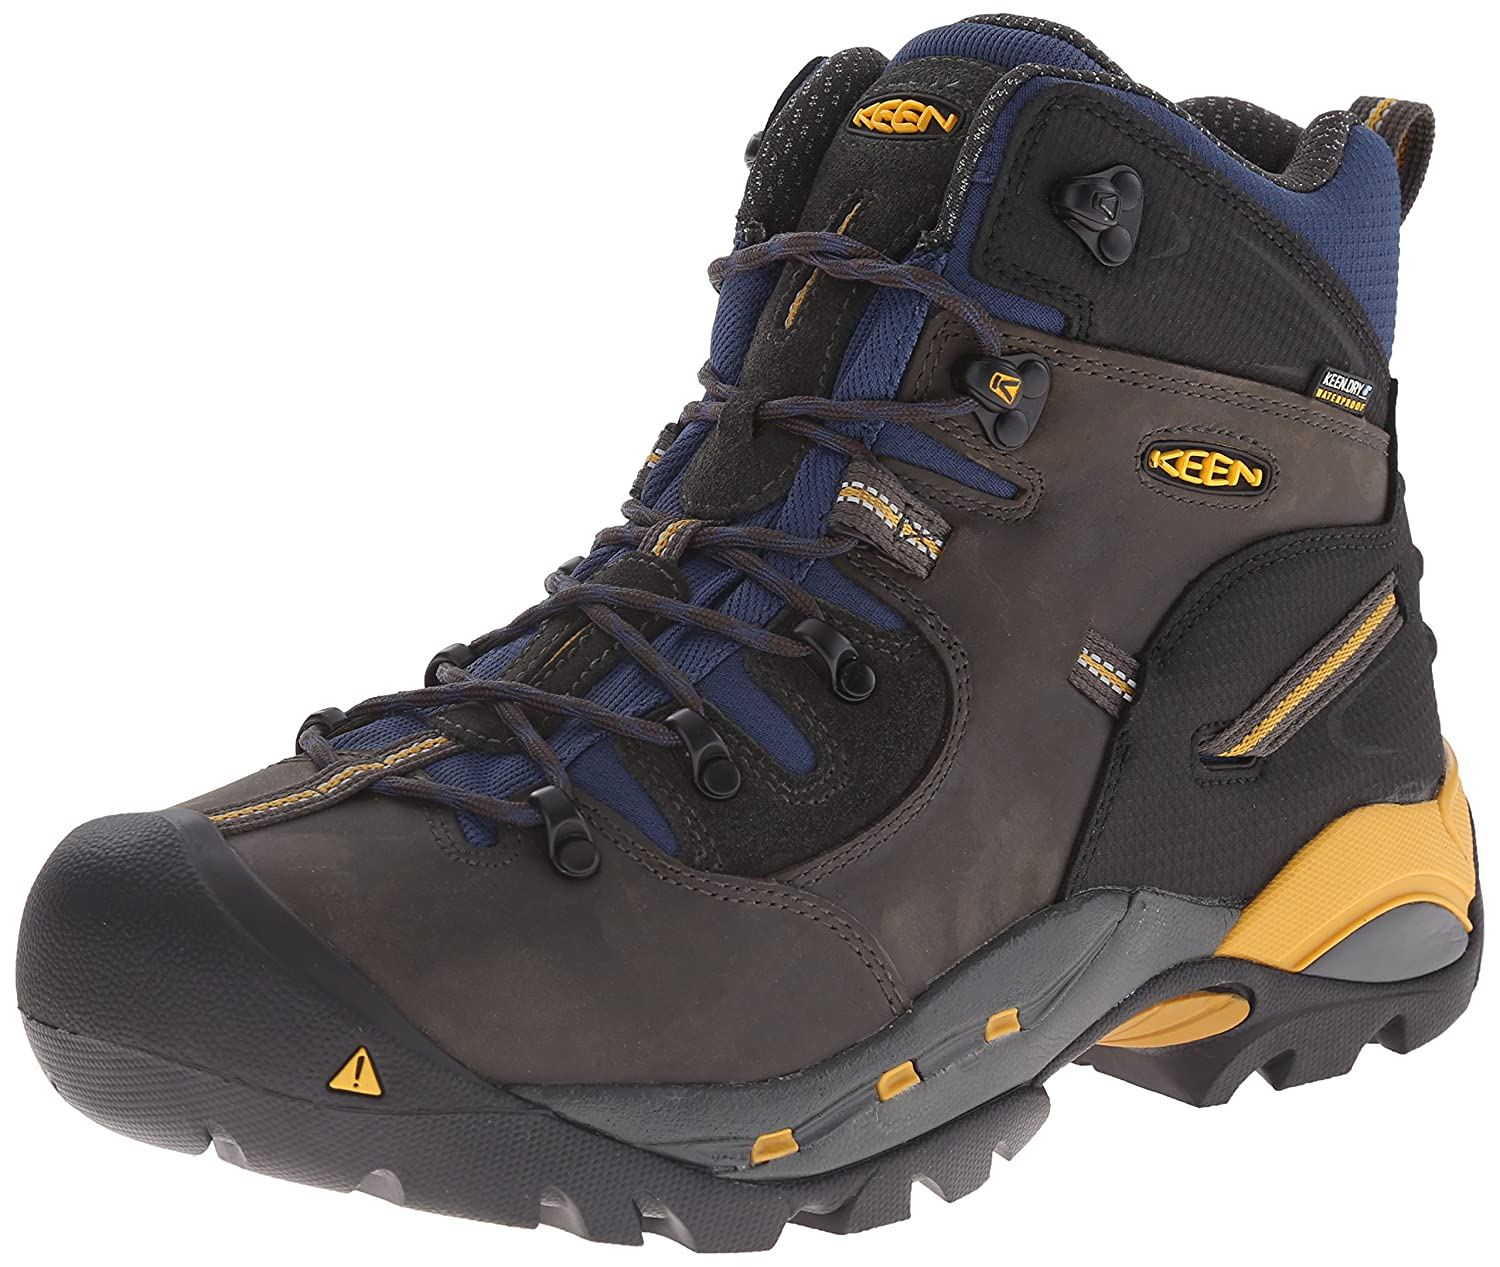 1013246 KEEN Men's Pittsburgh Safety Boots - Raven